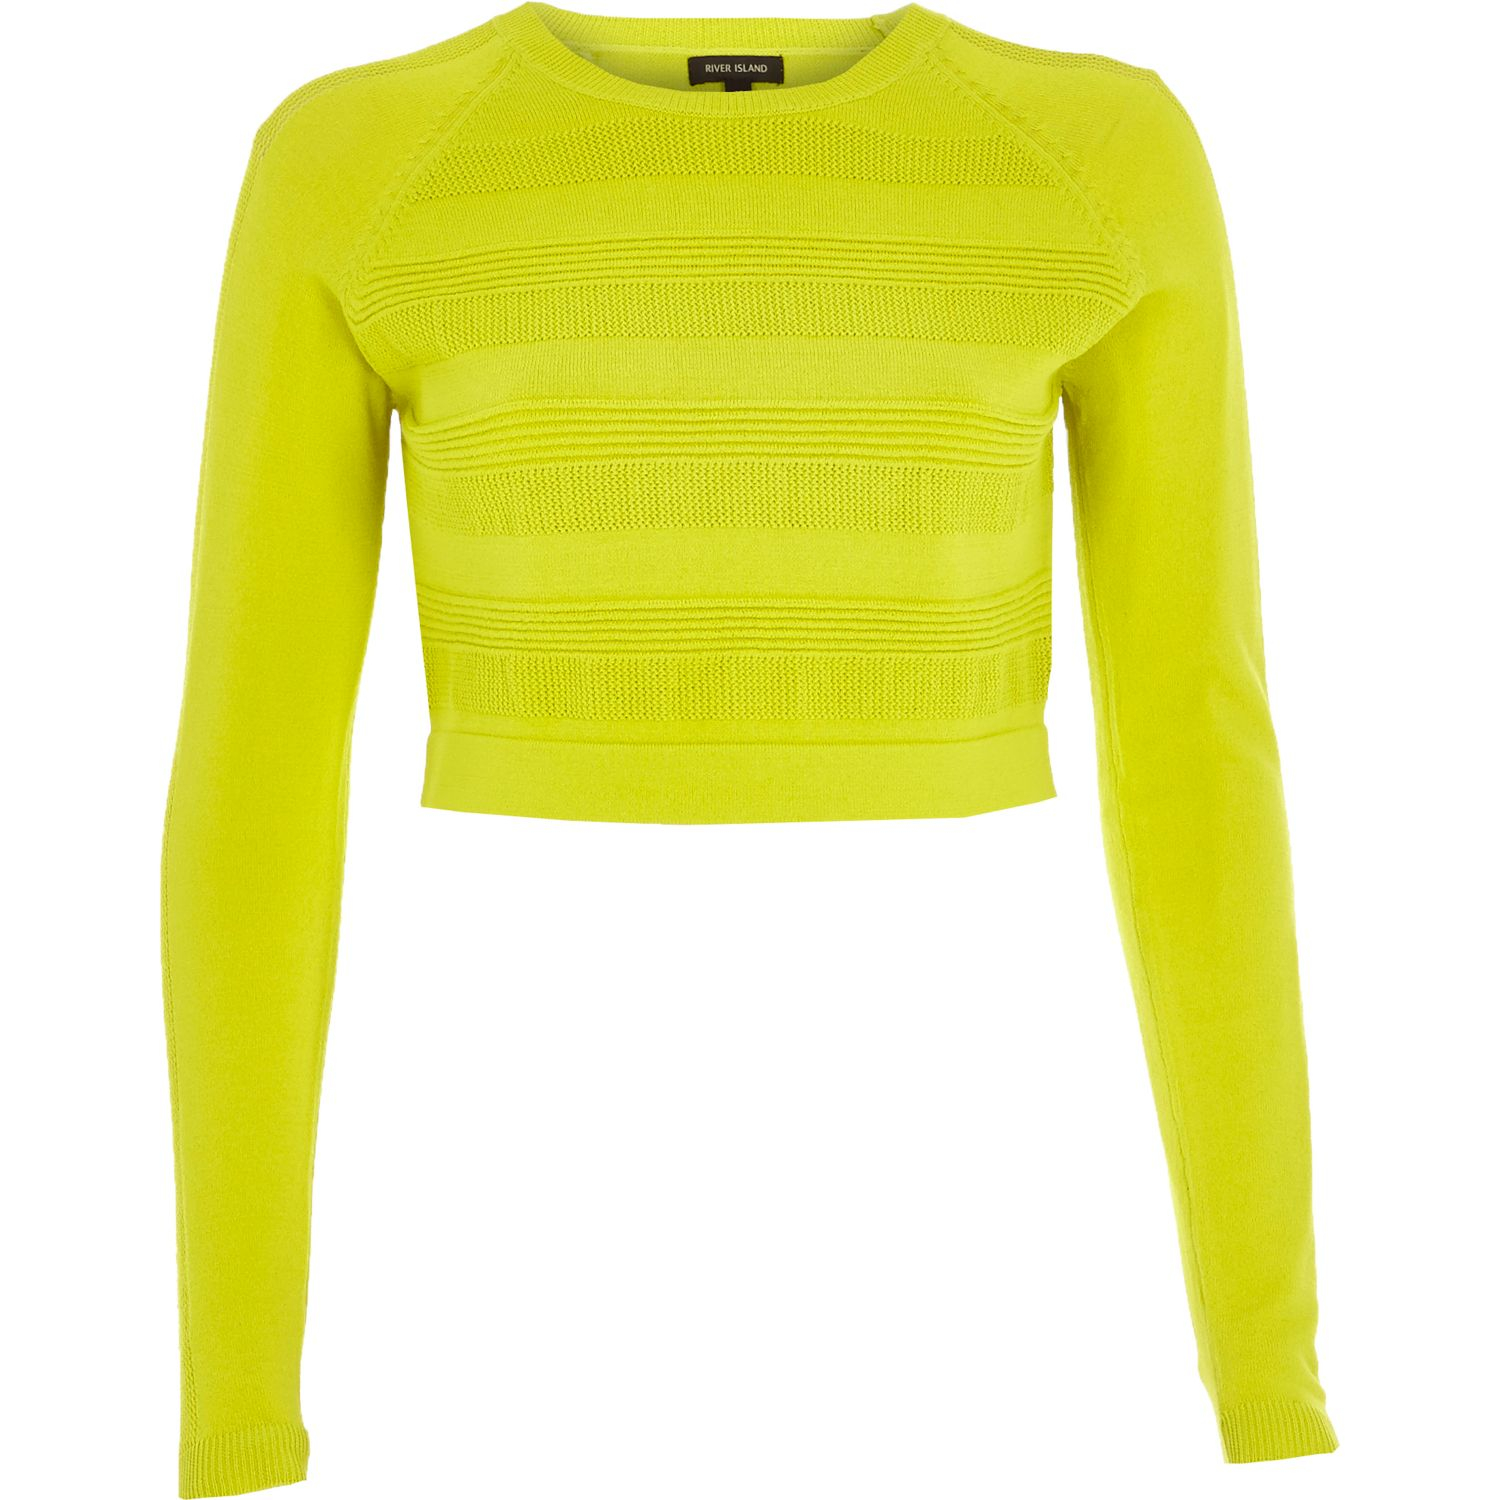 18e46895d43 River Island Lime Ripple Mesh Knitted Crop Top in Green - Lyst